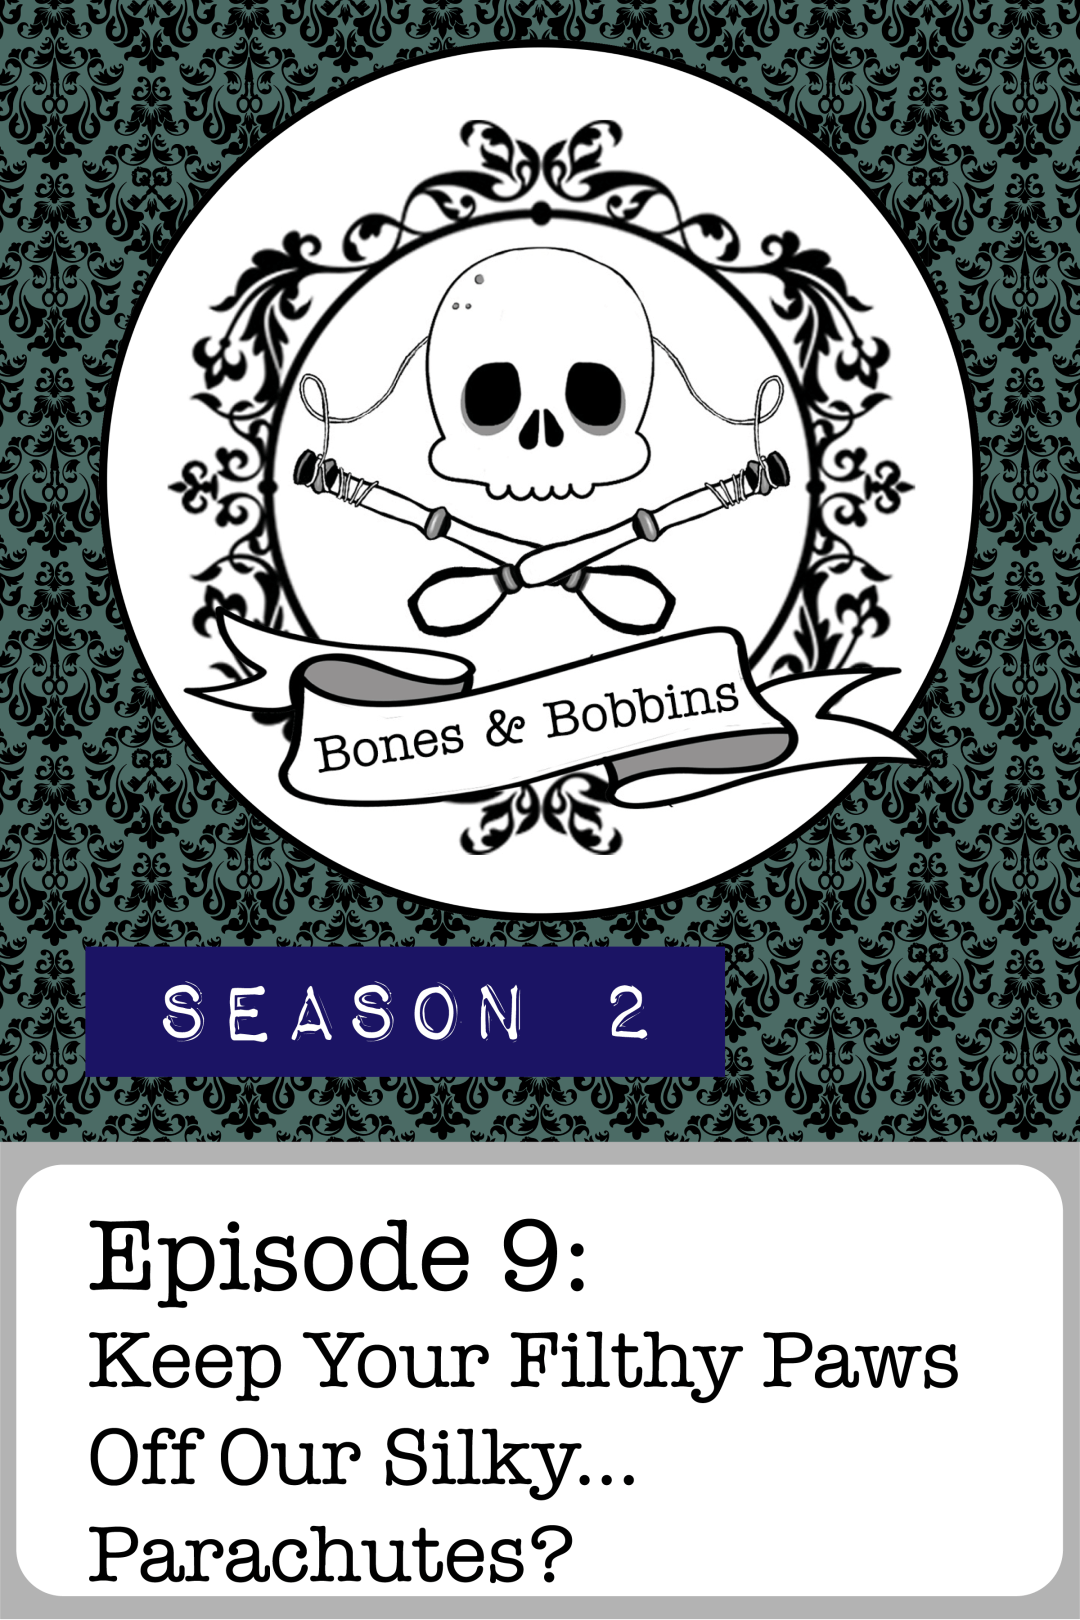 The Bones & Bobbins Podcast, Season 2, Episode 09: Keep Your Filthy Paws Off Our Silky...Parachutes?